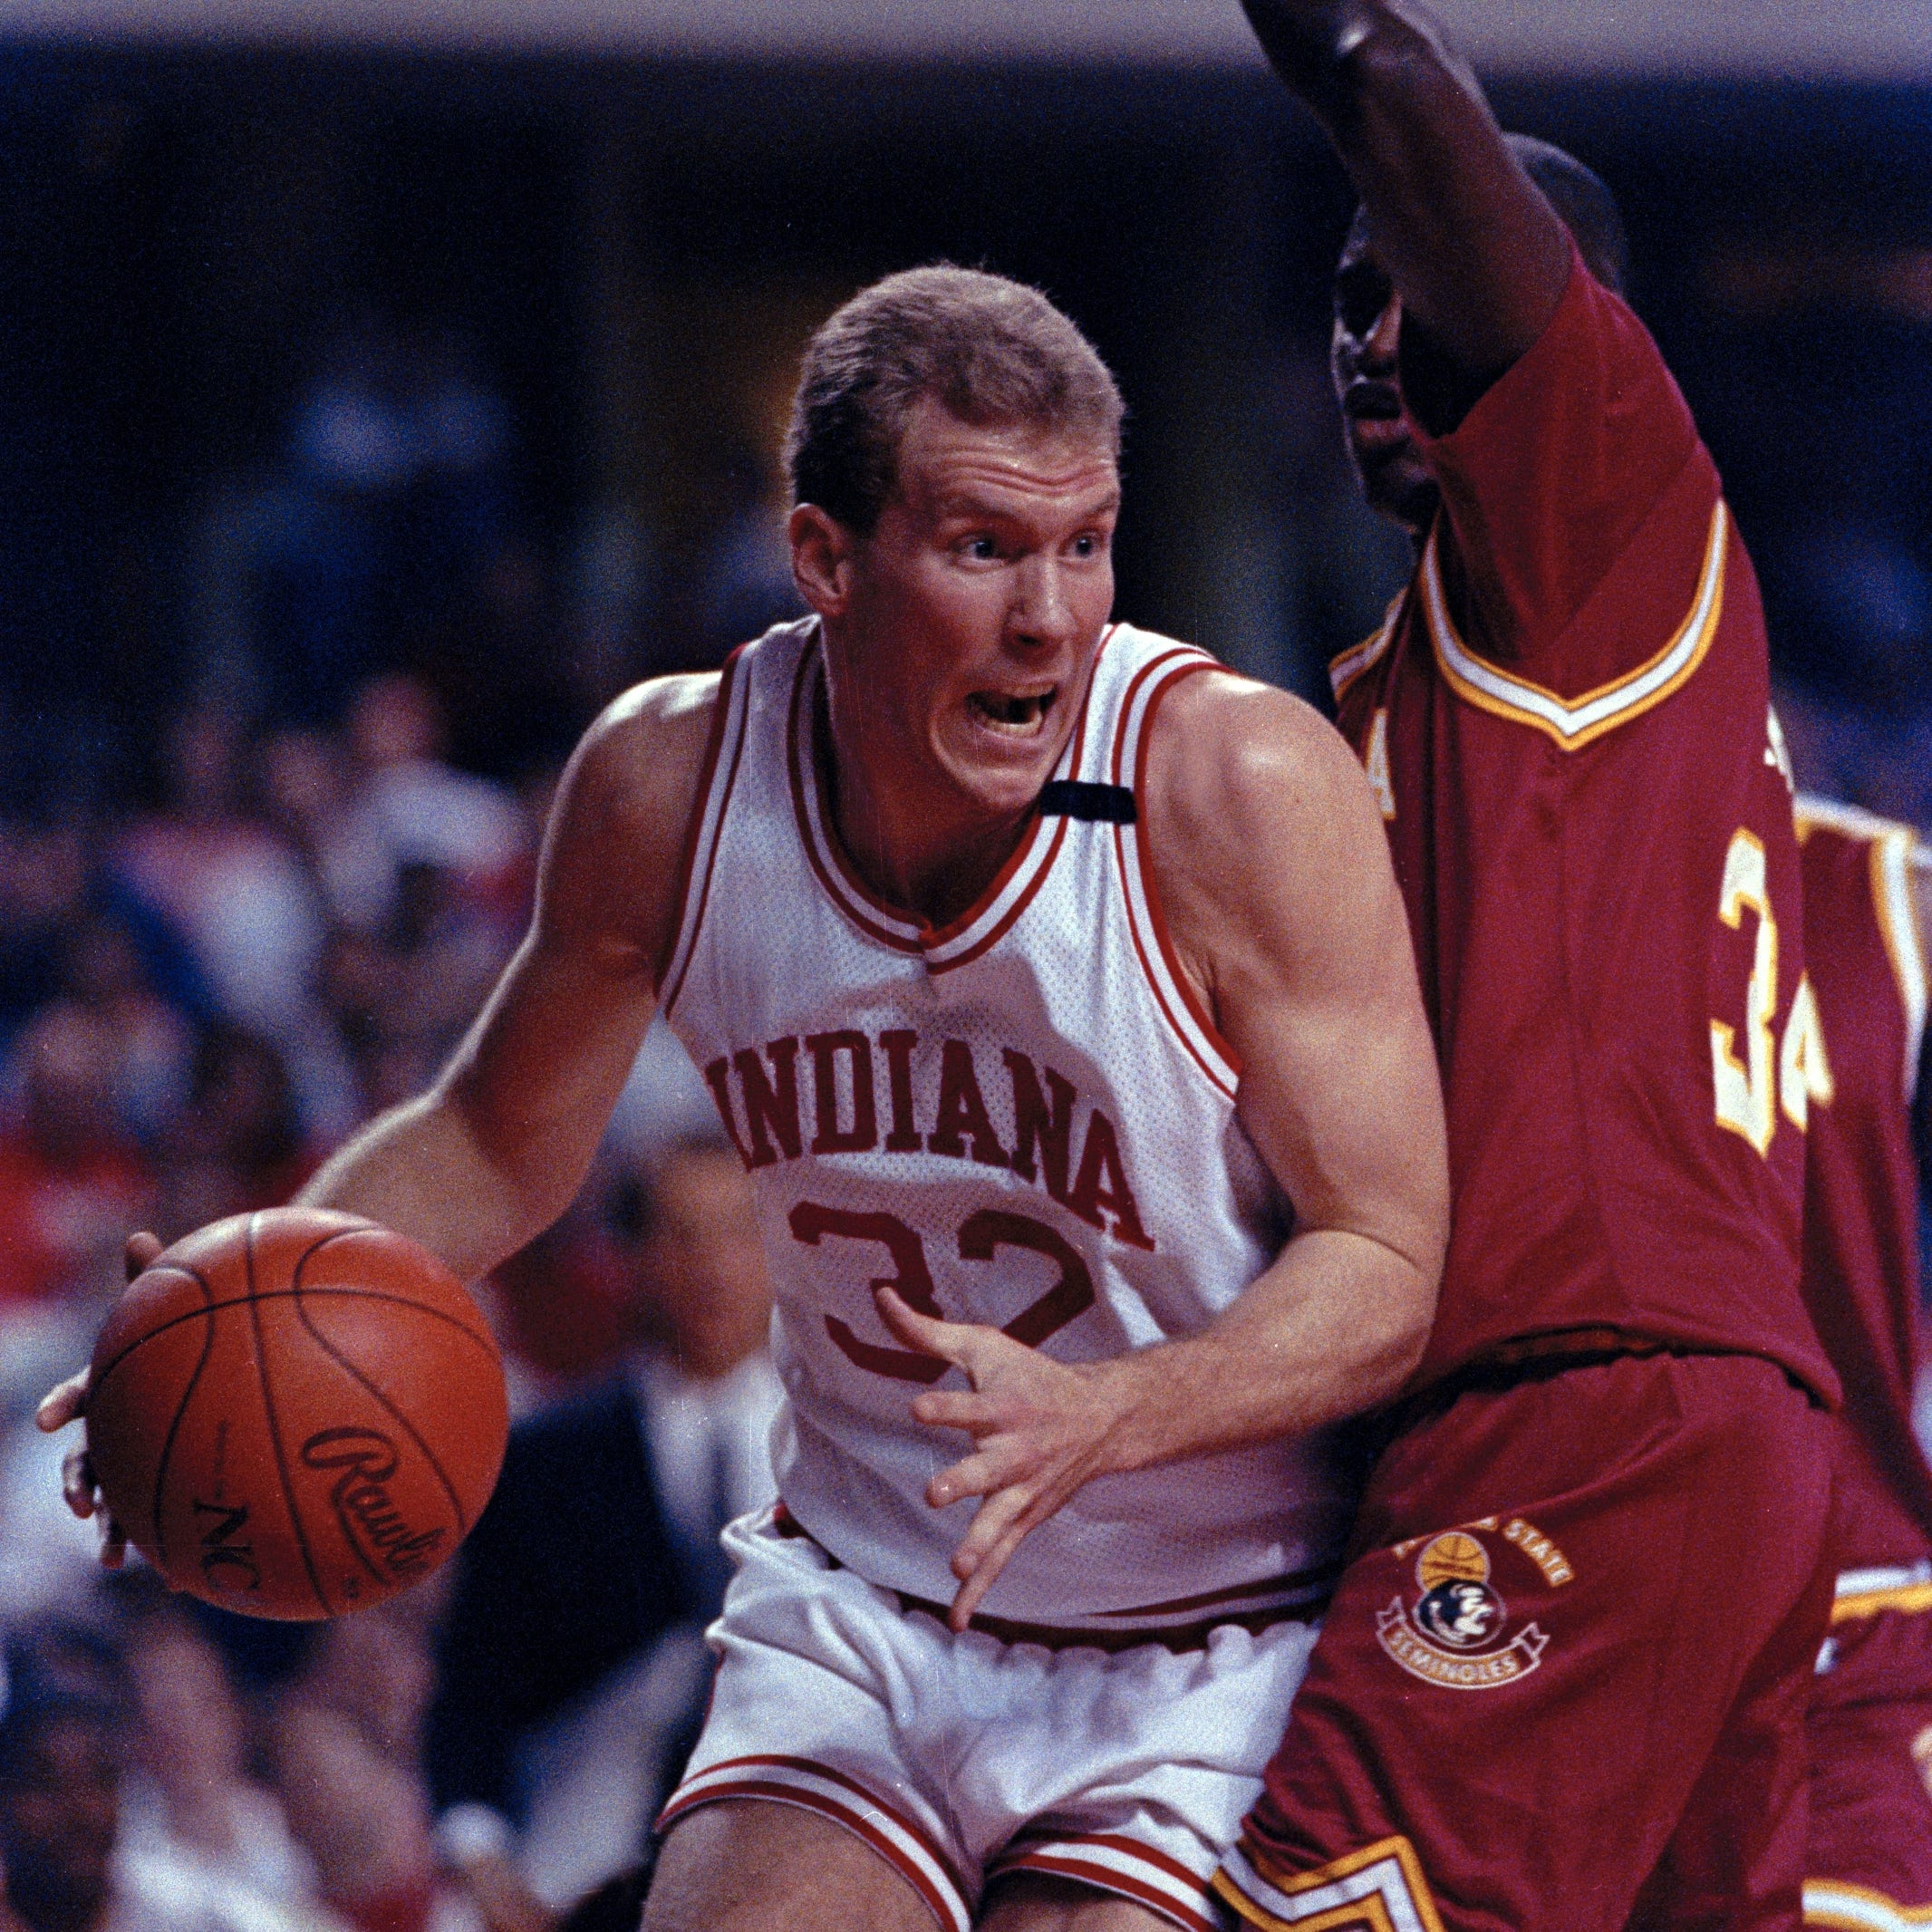 Former IU basketball star Eric Anderson dies at 48: 'He was just a great teammate'